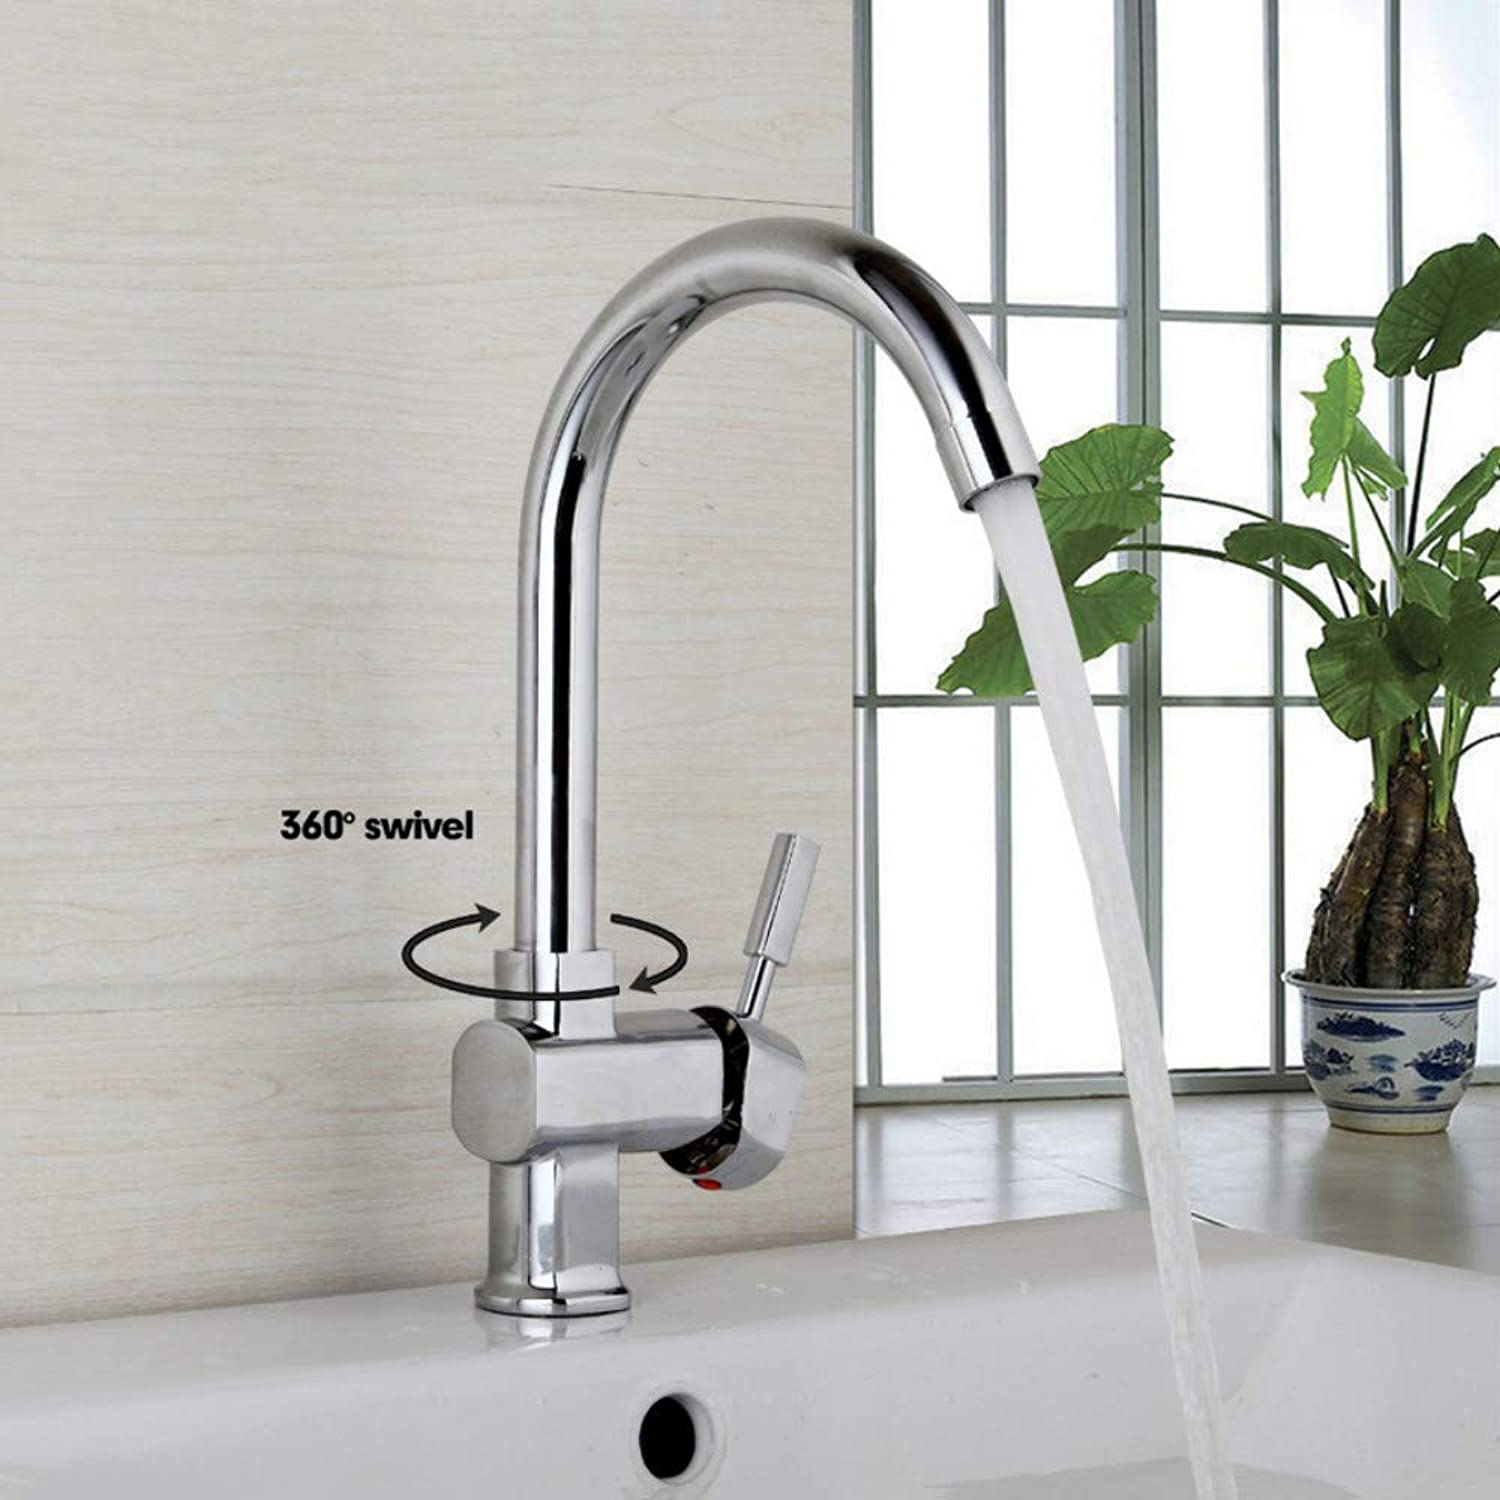 New 360 Swivel New Design Kitchen Sink Faucet Deck Mounted Taps Polish Chrome Finish Hot & Cold Water Mixer Stream Spout